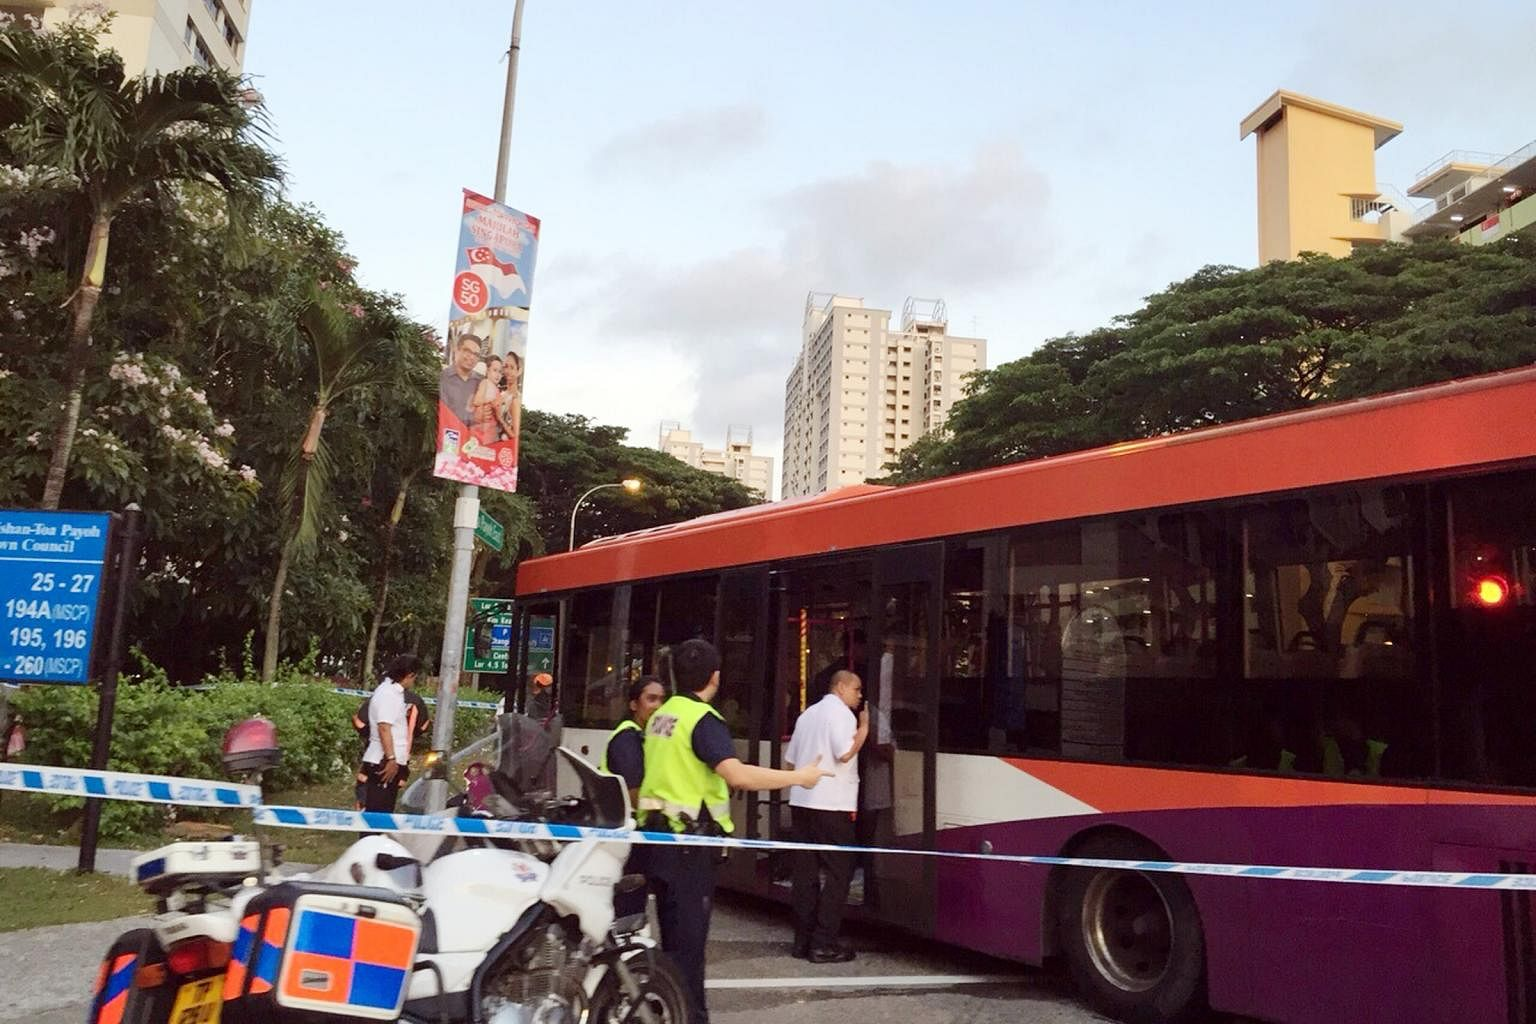 7 passengers hurt in SBS bus accident at Toa Payoh